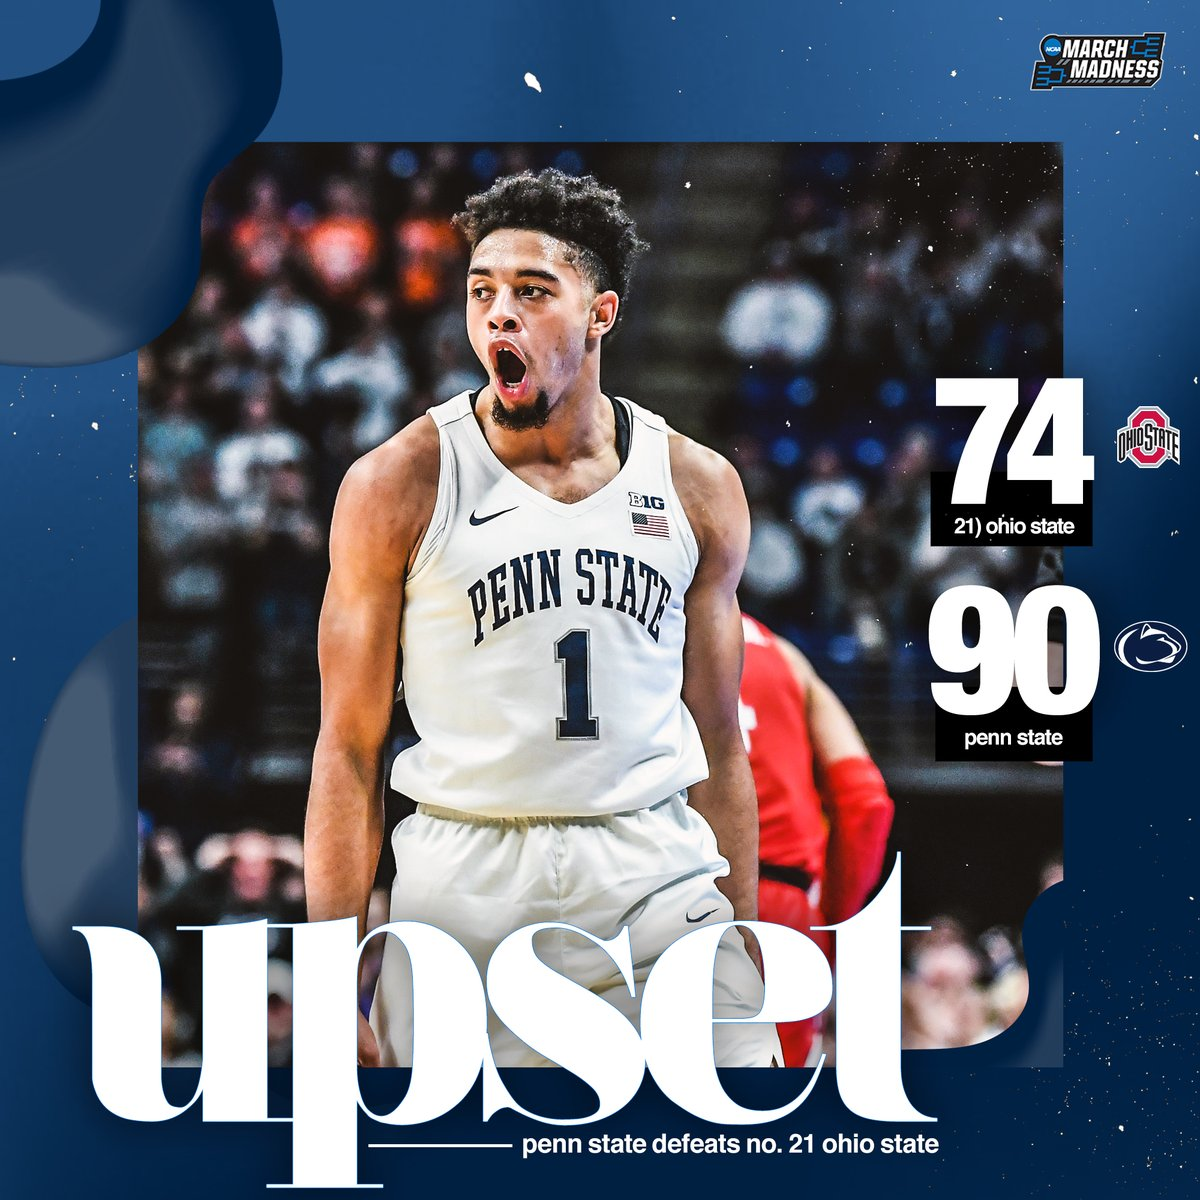 @marchmadness's photo on #ClimbWithUs